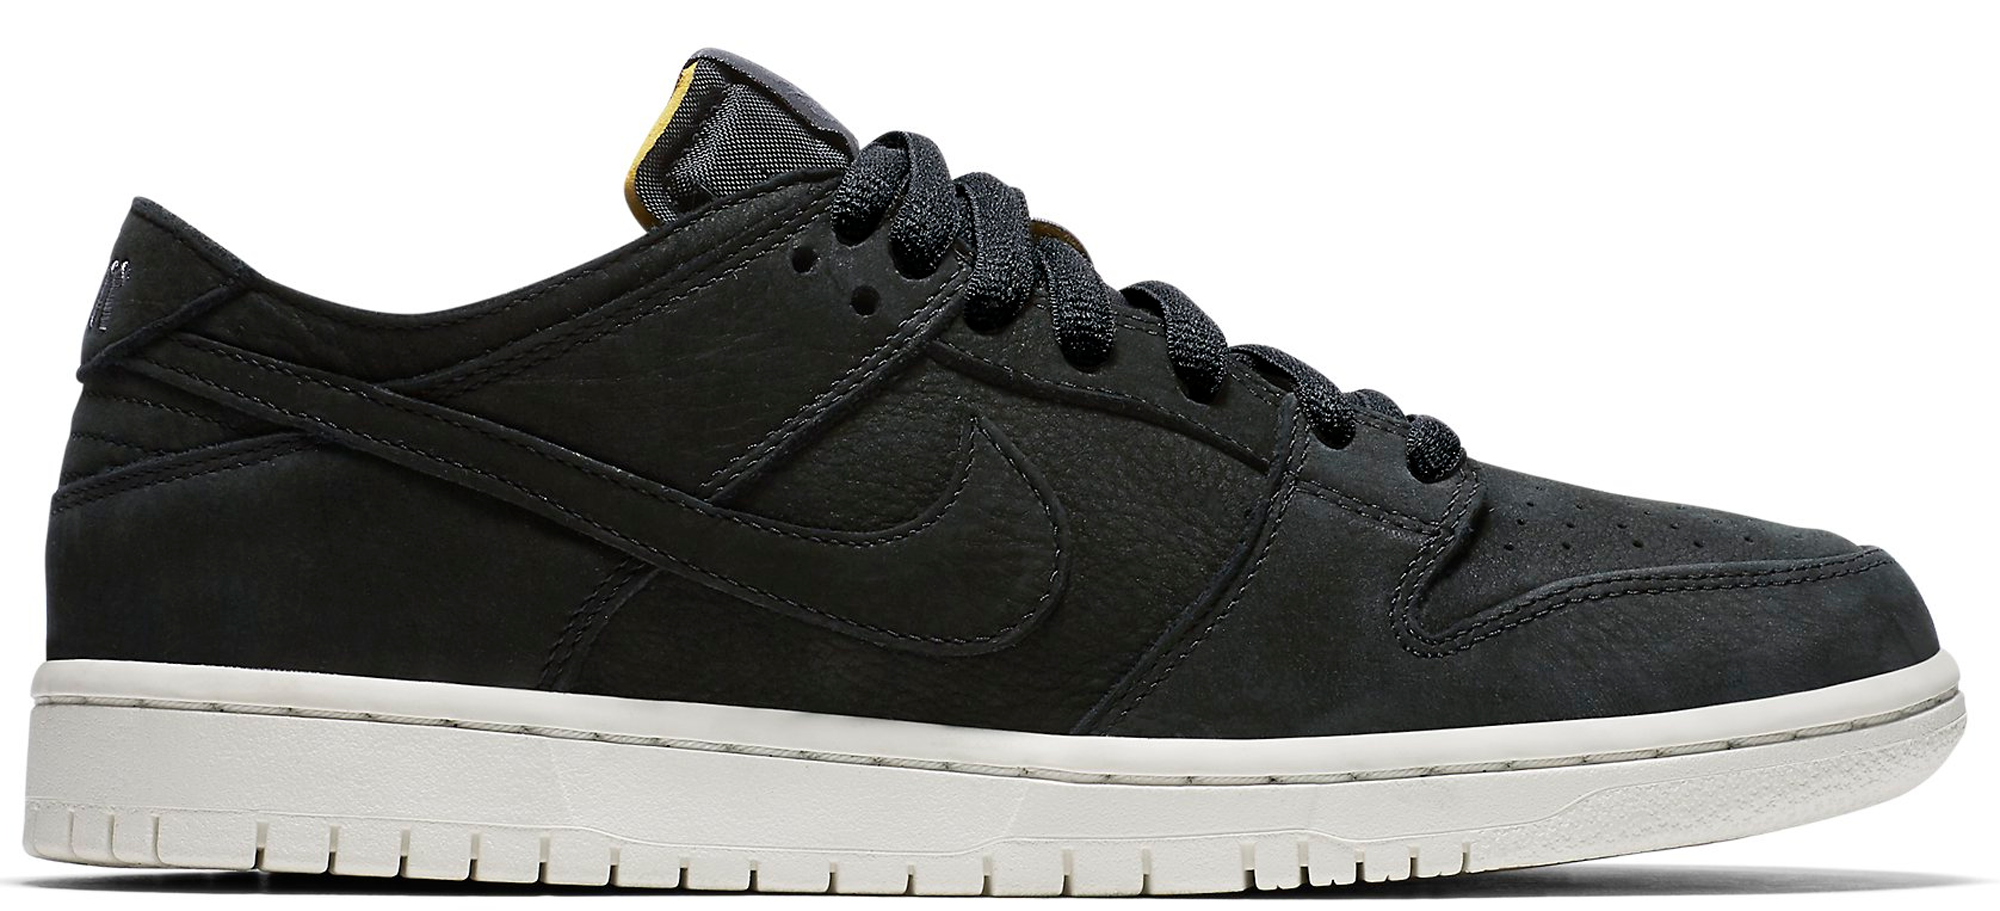 Nike SB Dunk Low Decon Black